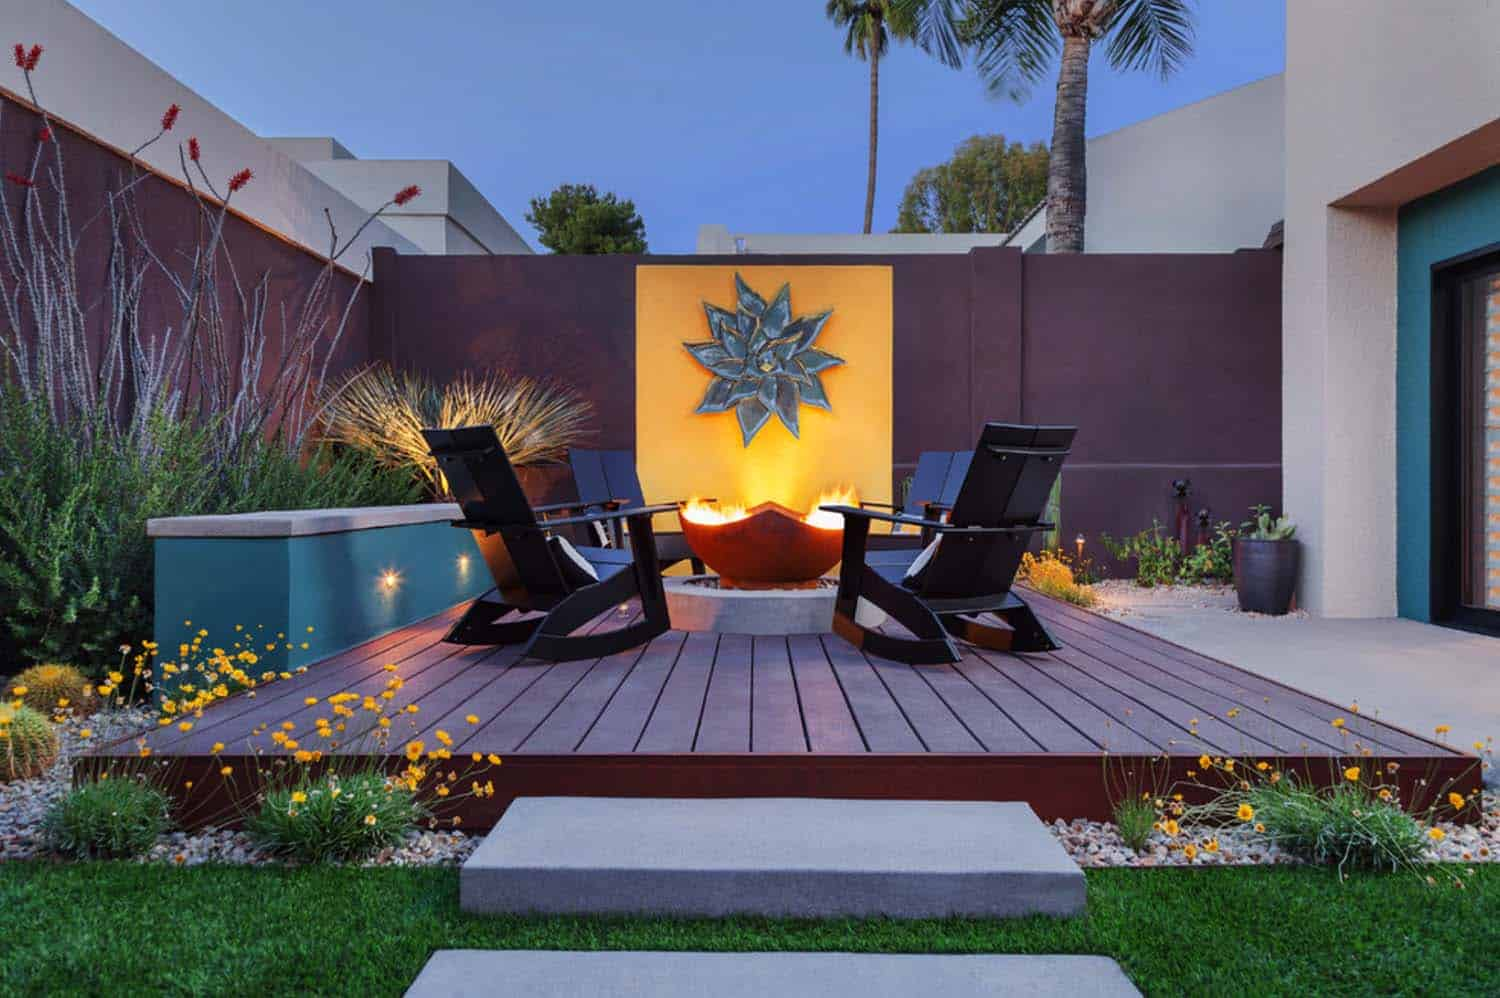 Contemporary Deck Ideas-Fire Features-07-1 Kindesign